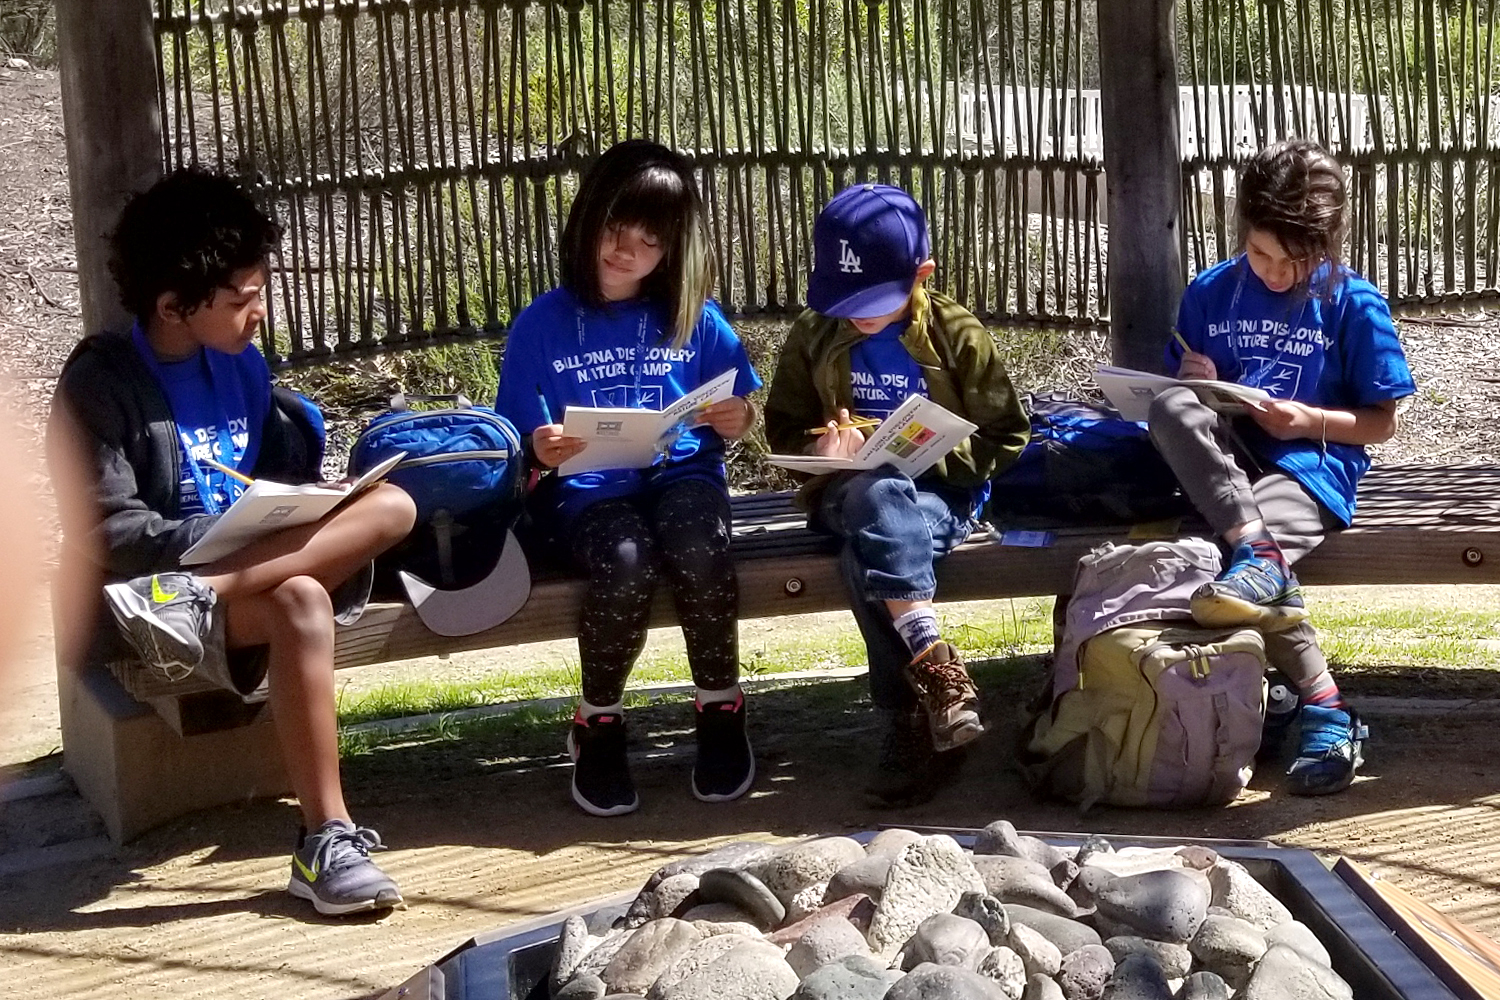 Group of campers working on an assignment at Ballona Discovery Park